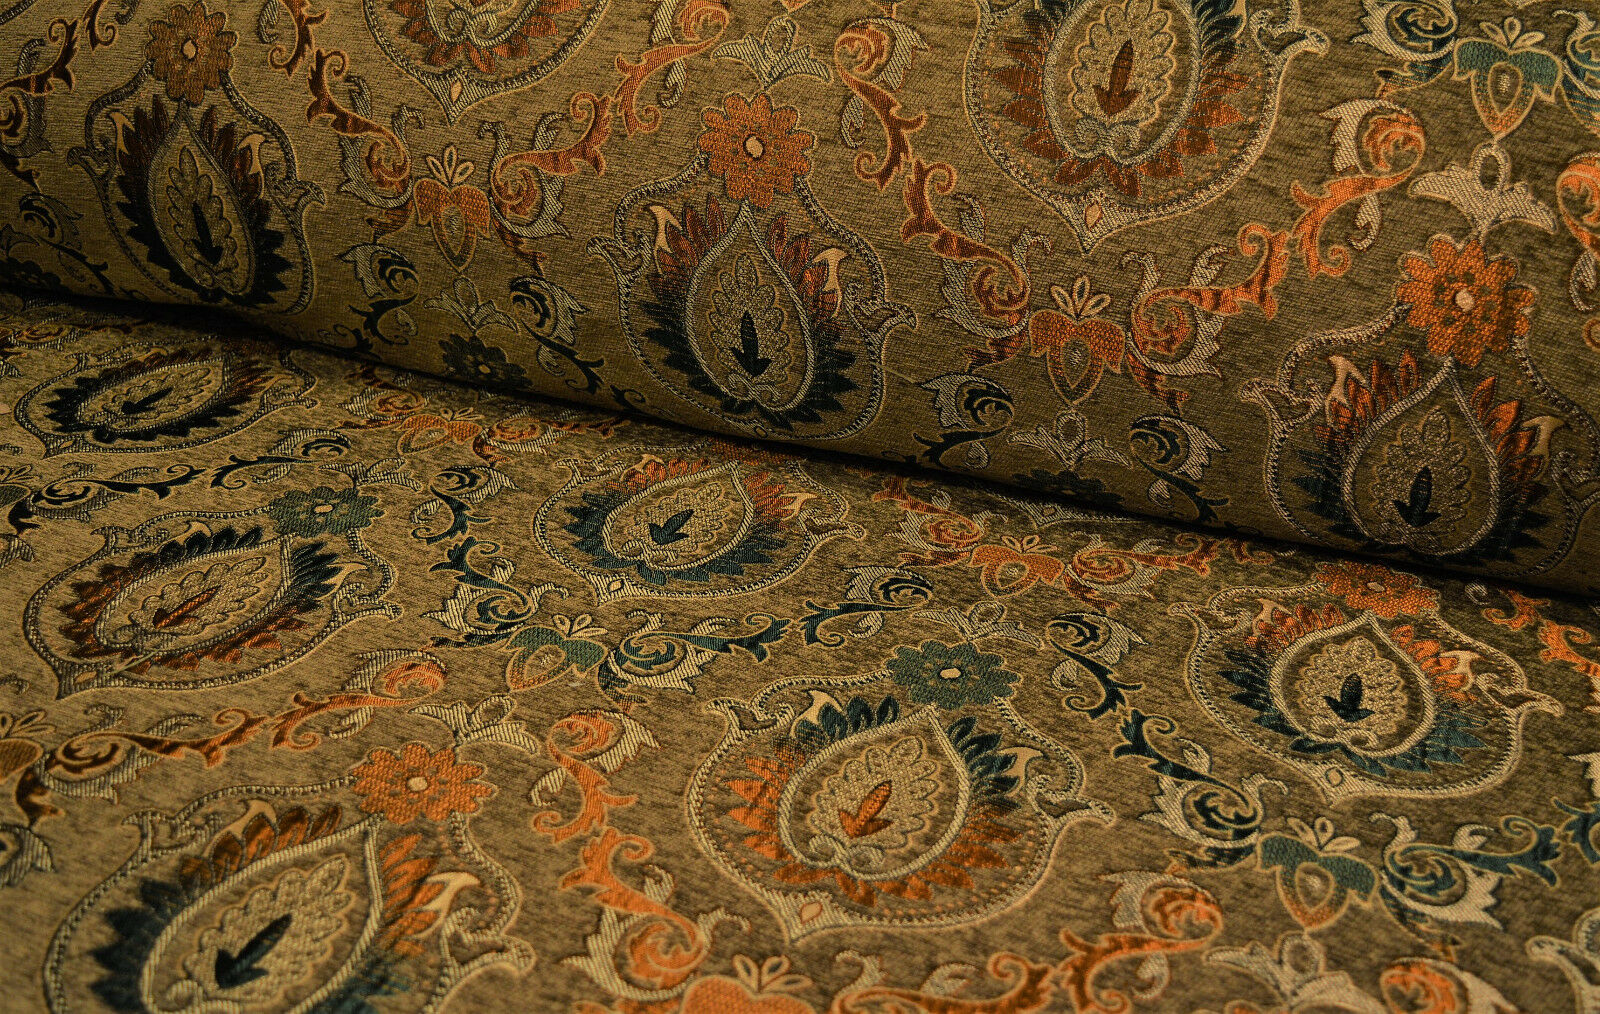 Amazing Mbelstoff Bezugsstoff Posterstoff Meterware Stoff Jacquard Ornament Barock Rank With Stoffe Ornamente